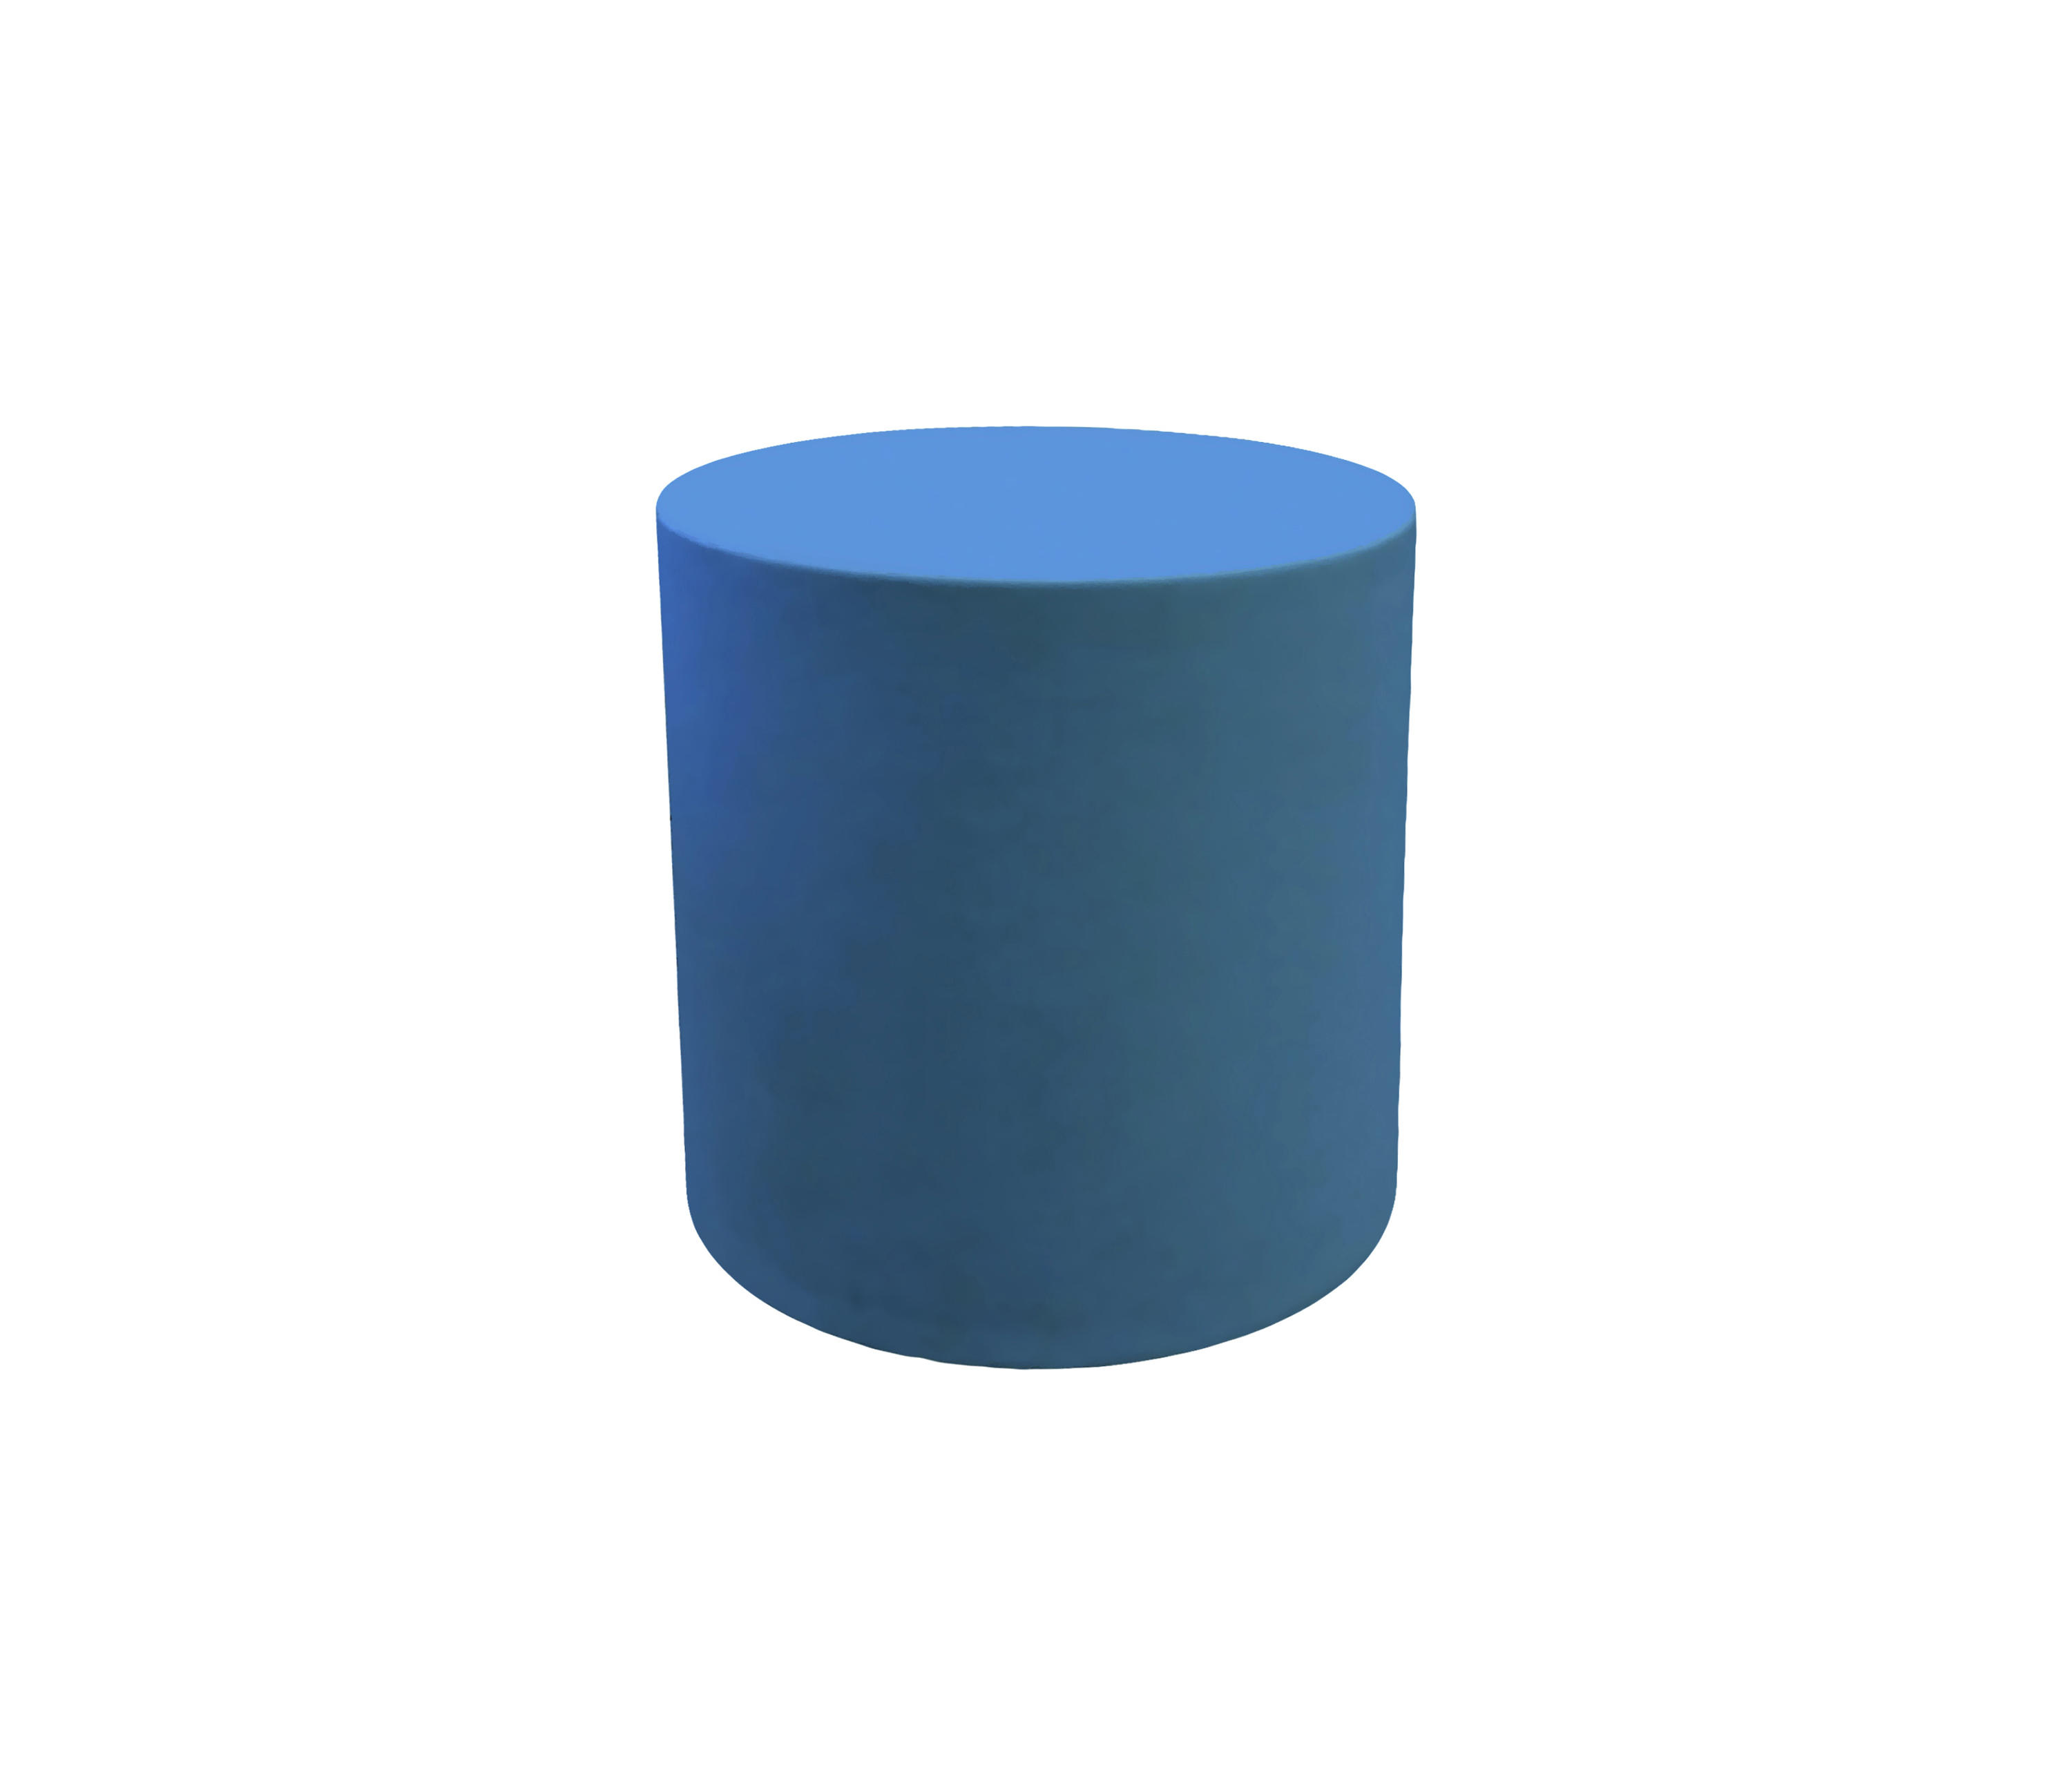 Cillinder Poufs From Sixinch Architonic